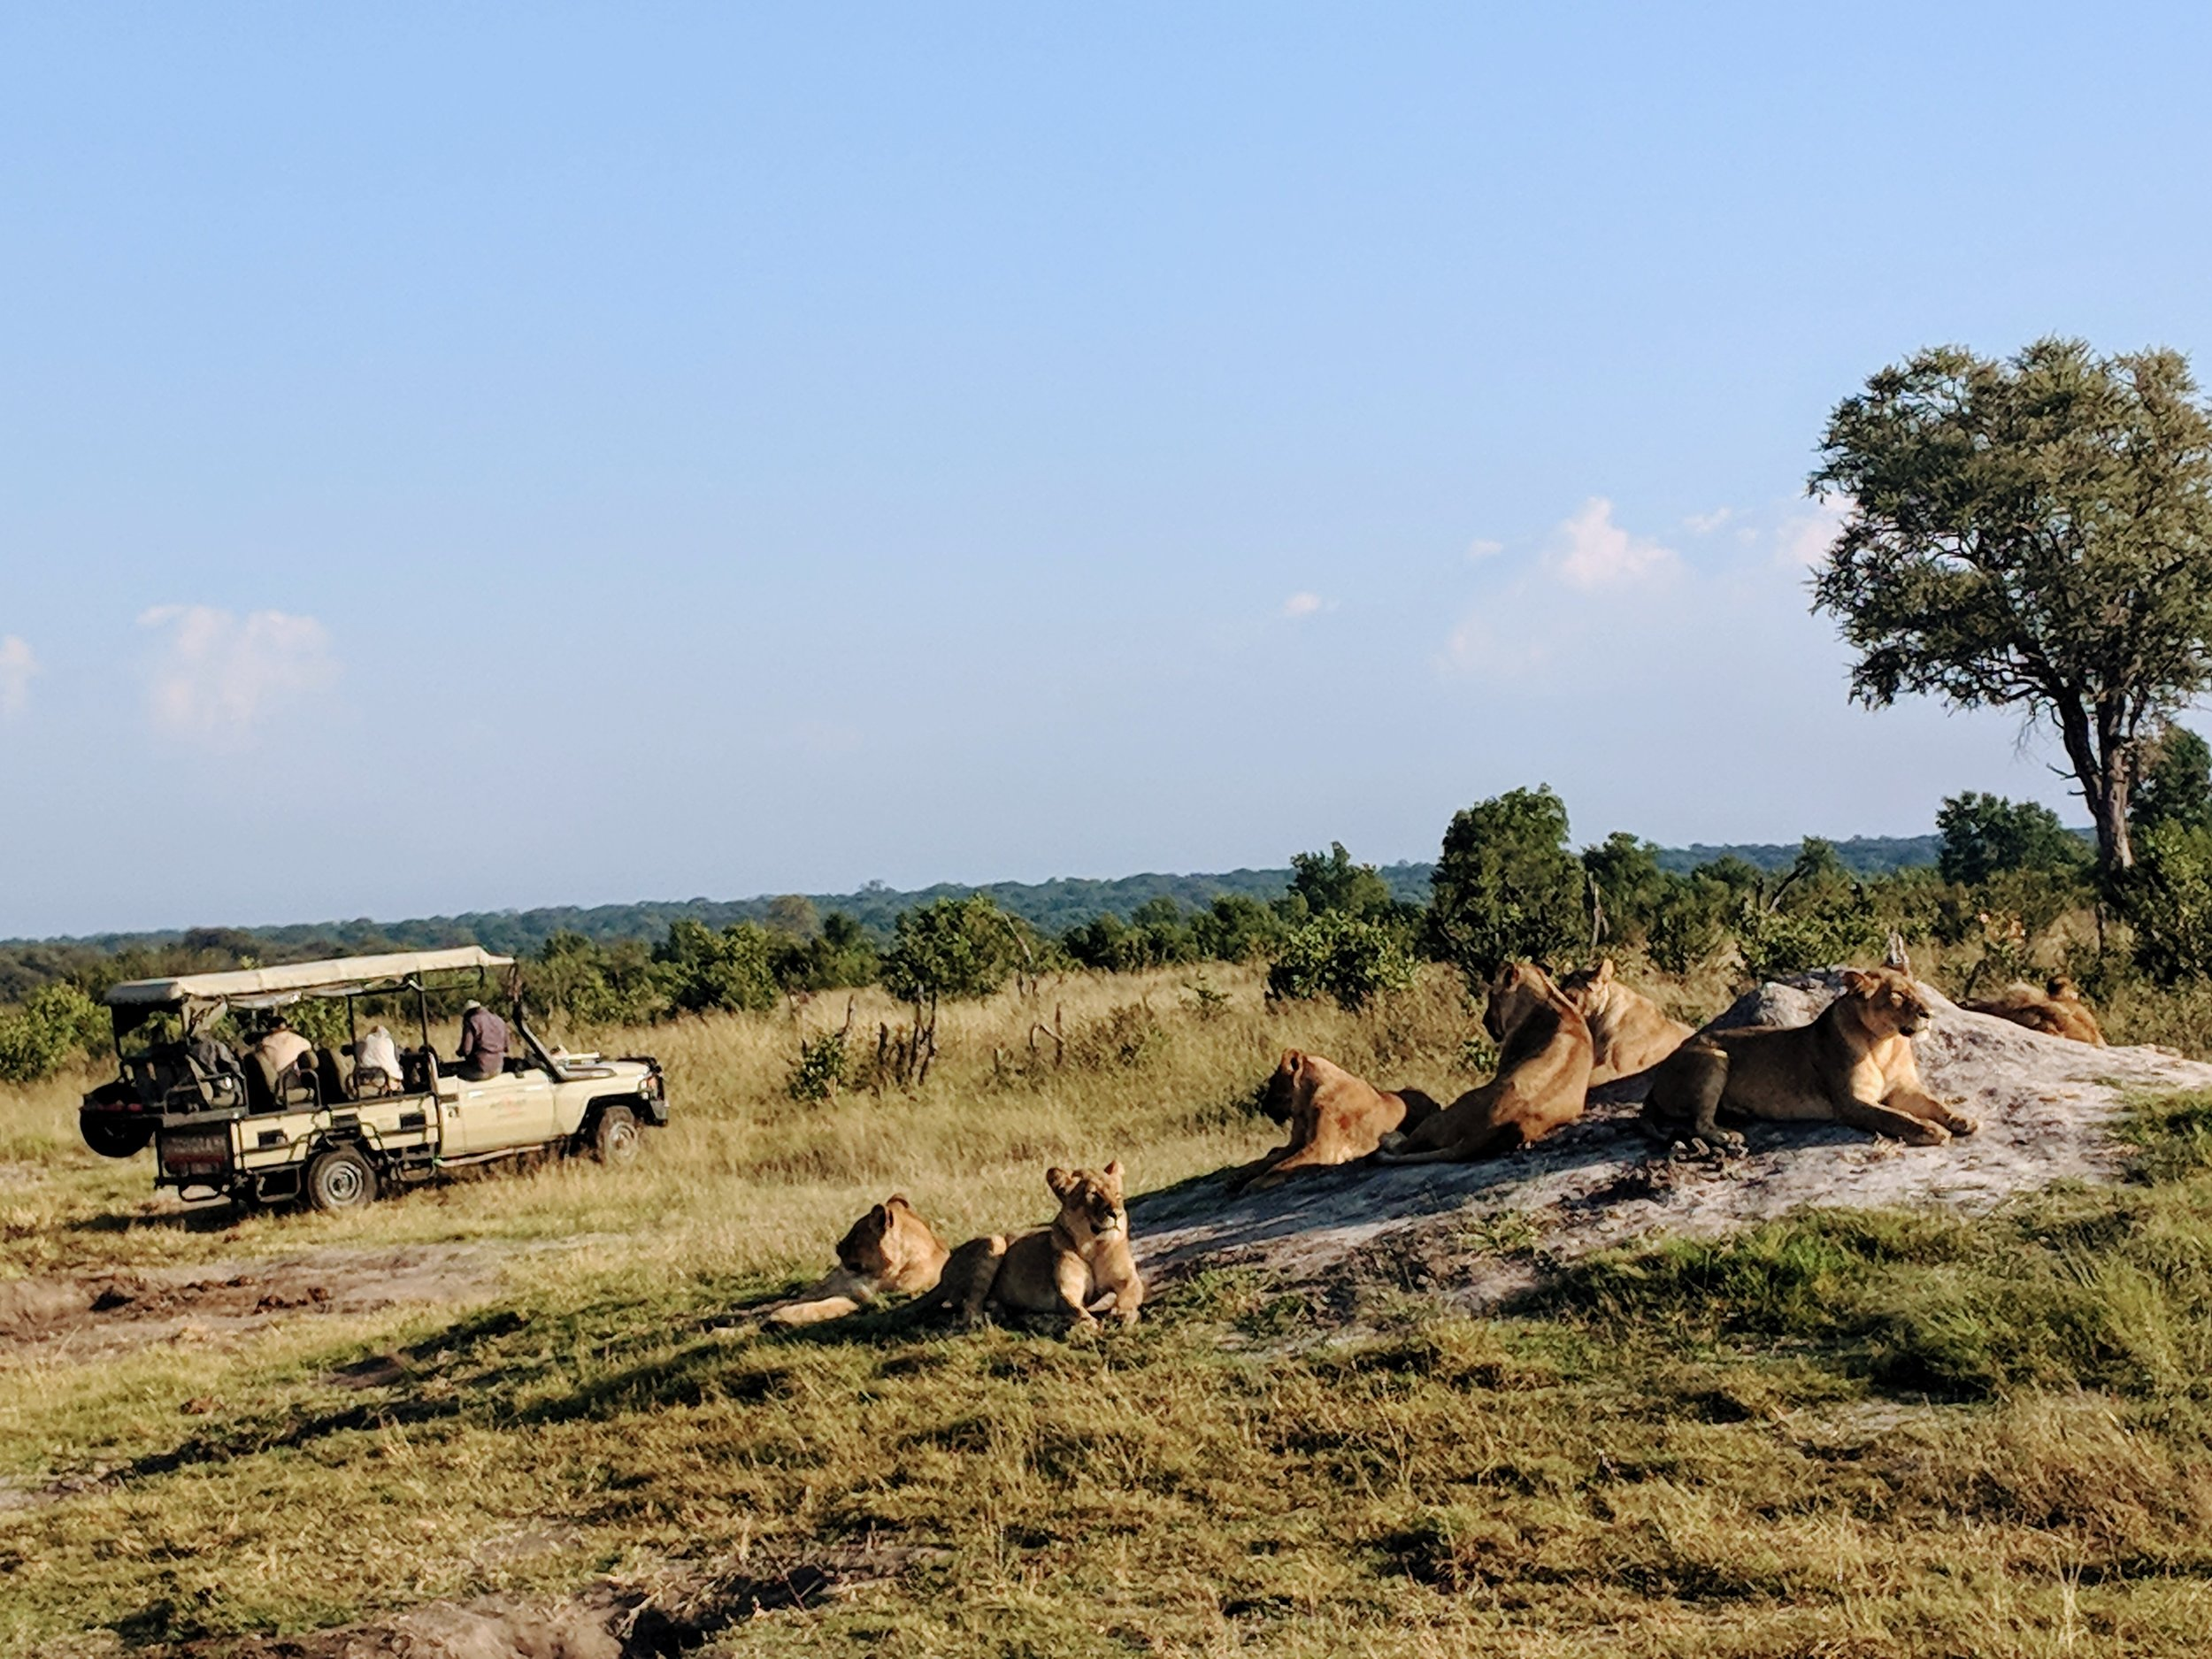 We saw Cecil's pride everyday while on safari at Somalisa Camp and it never got old.